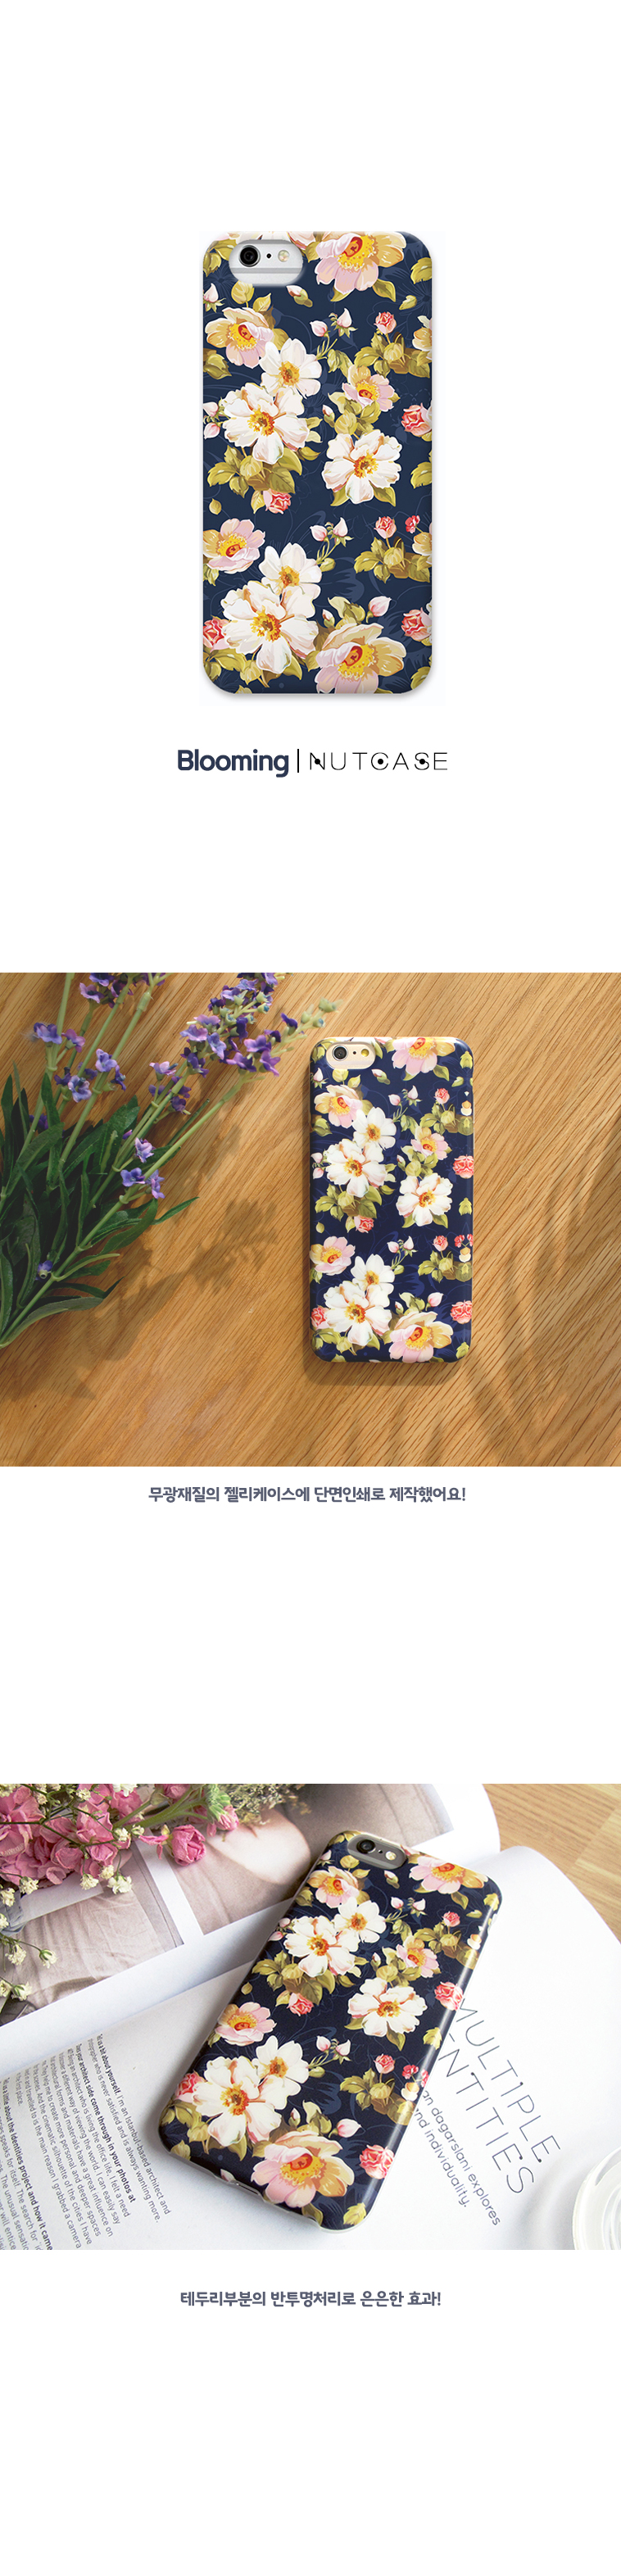 [ BISKET ] IPhone 66+ FlowerCaseBlooming